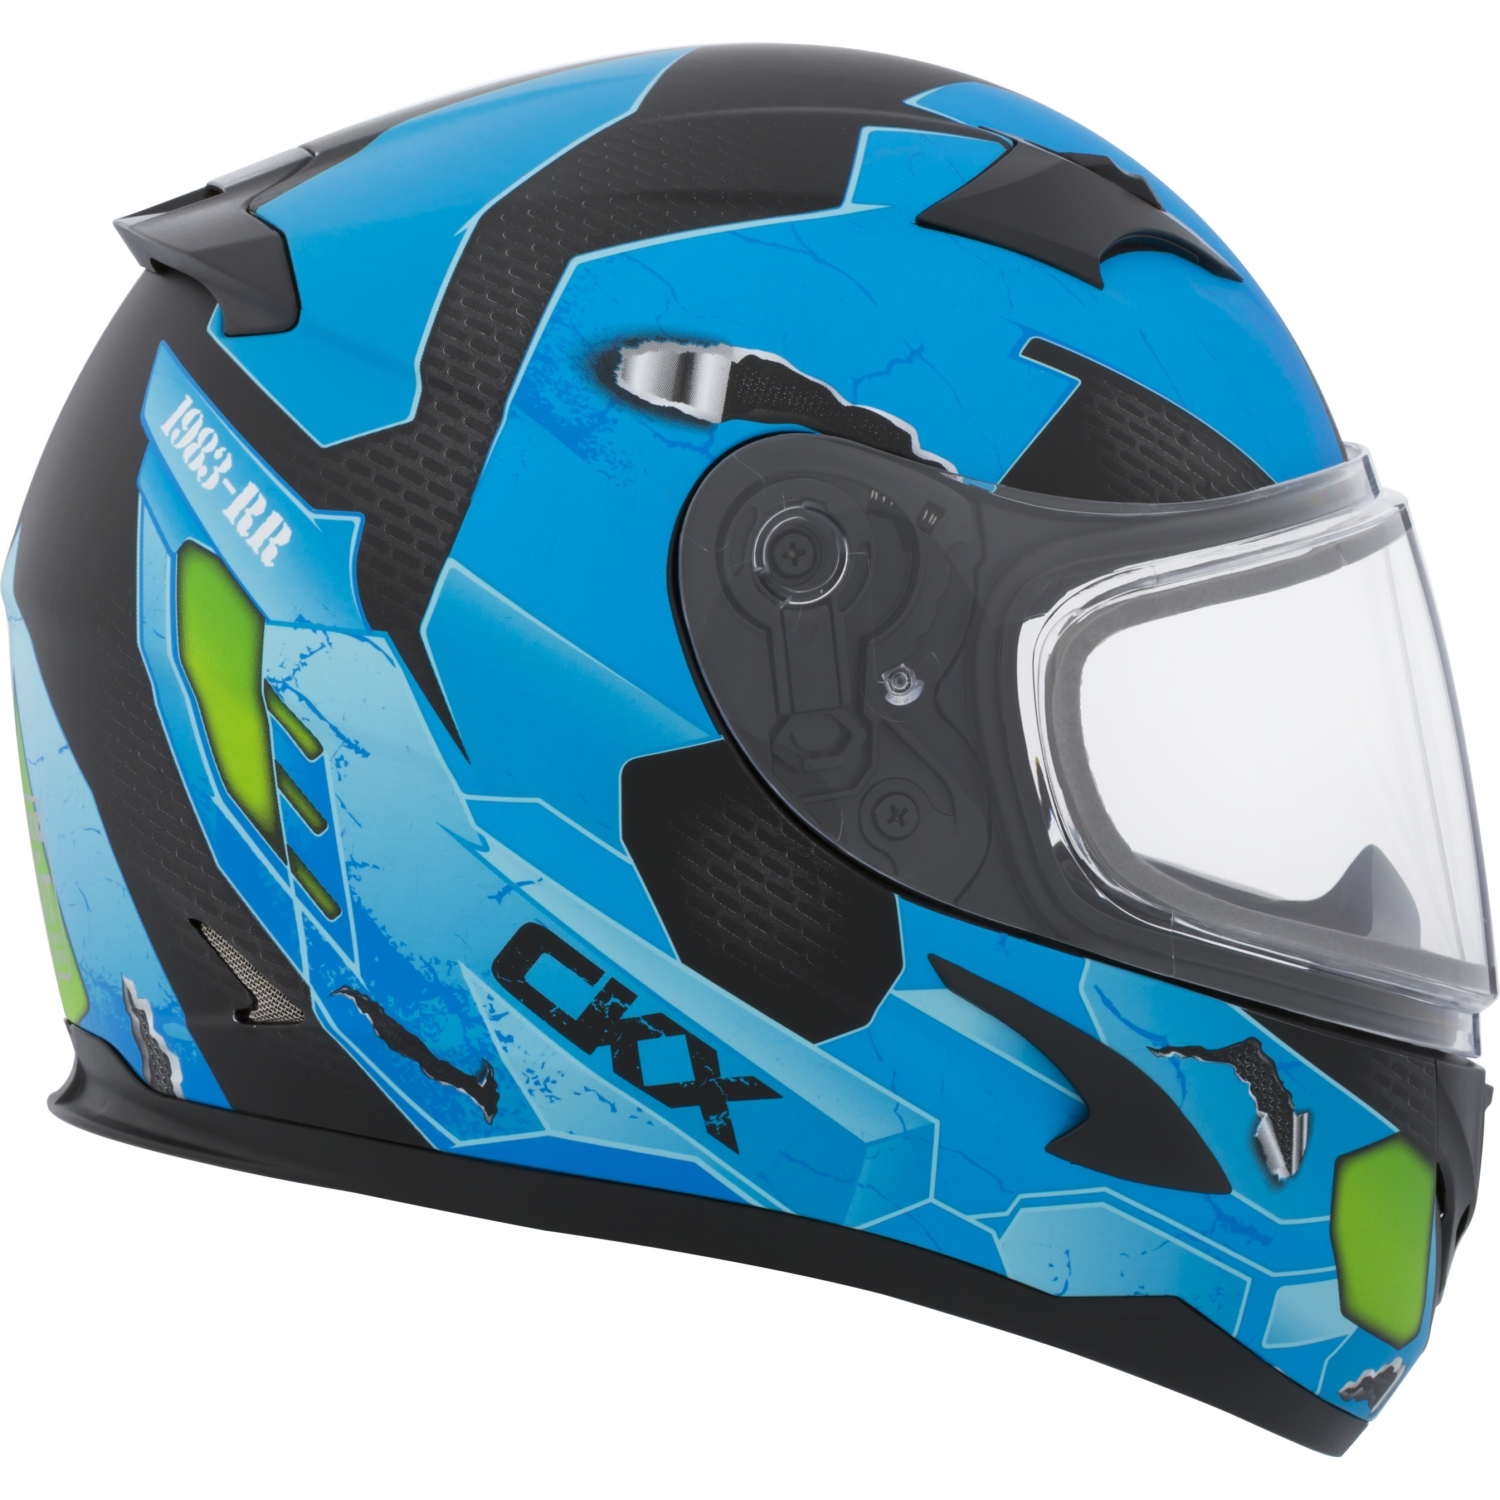 CKX Cosmos RR610Y Full-Face Helmet, Winter - Youth Double Shield